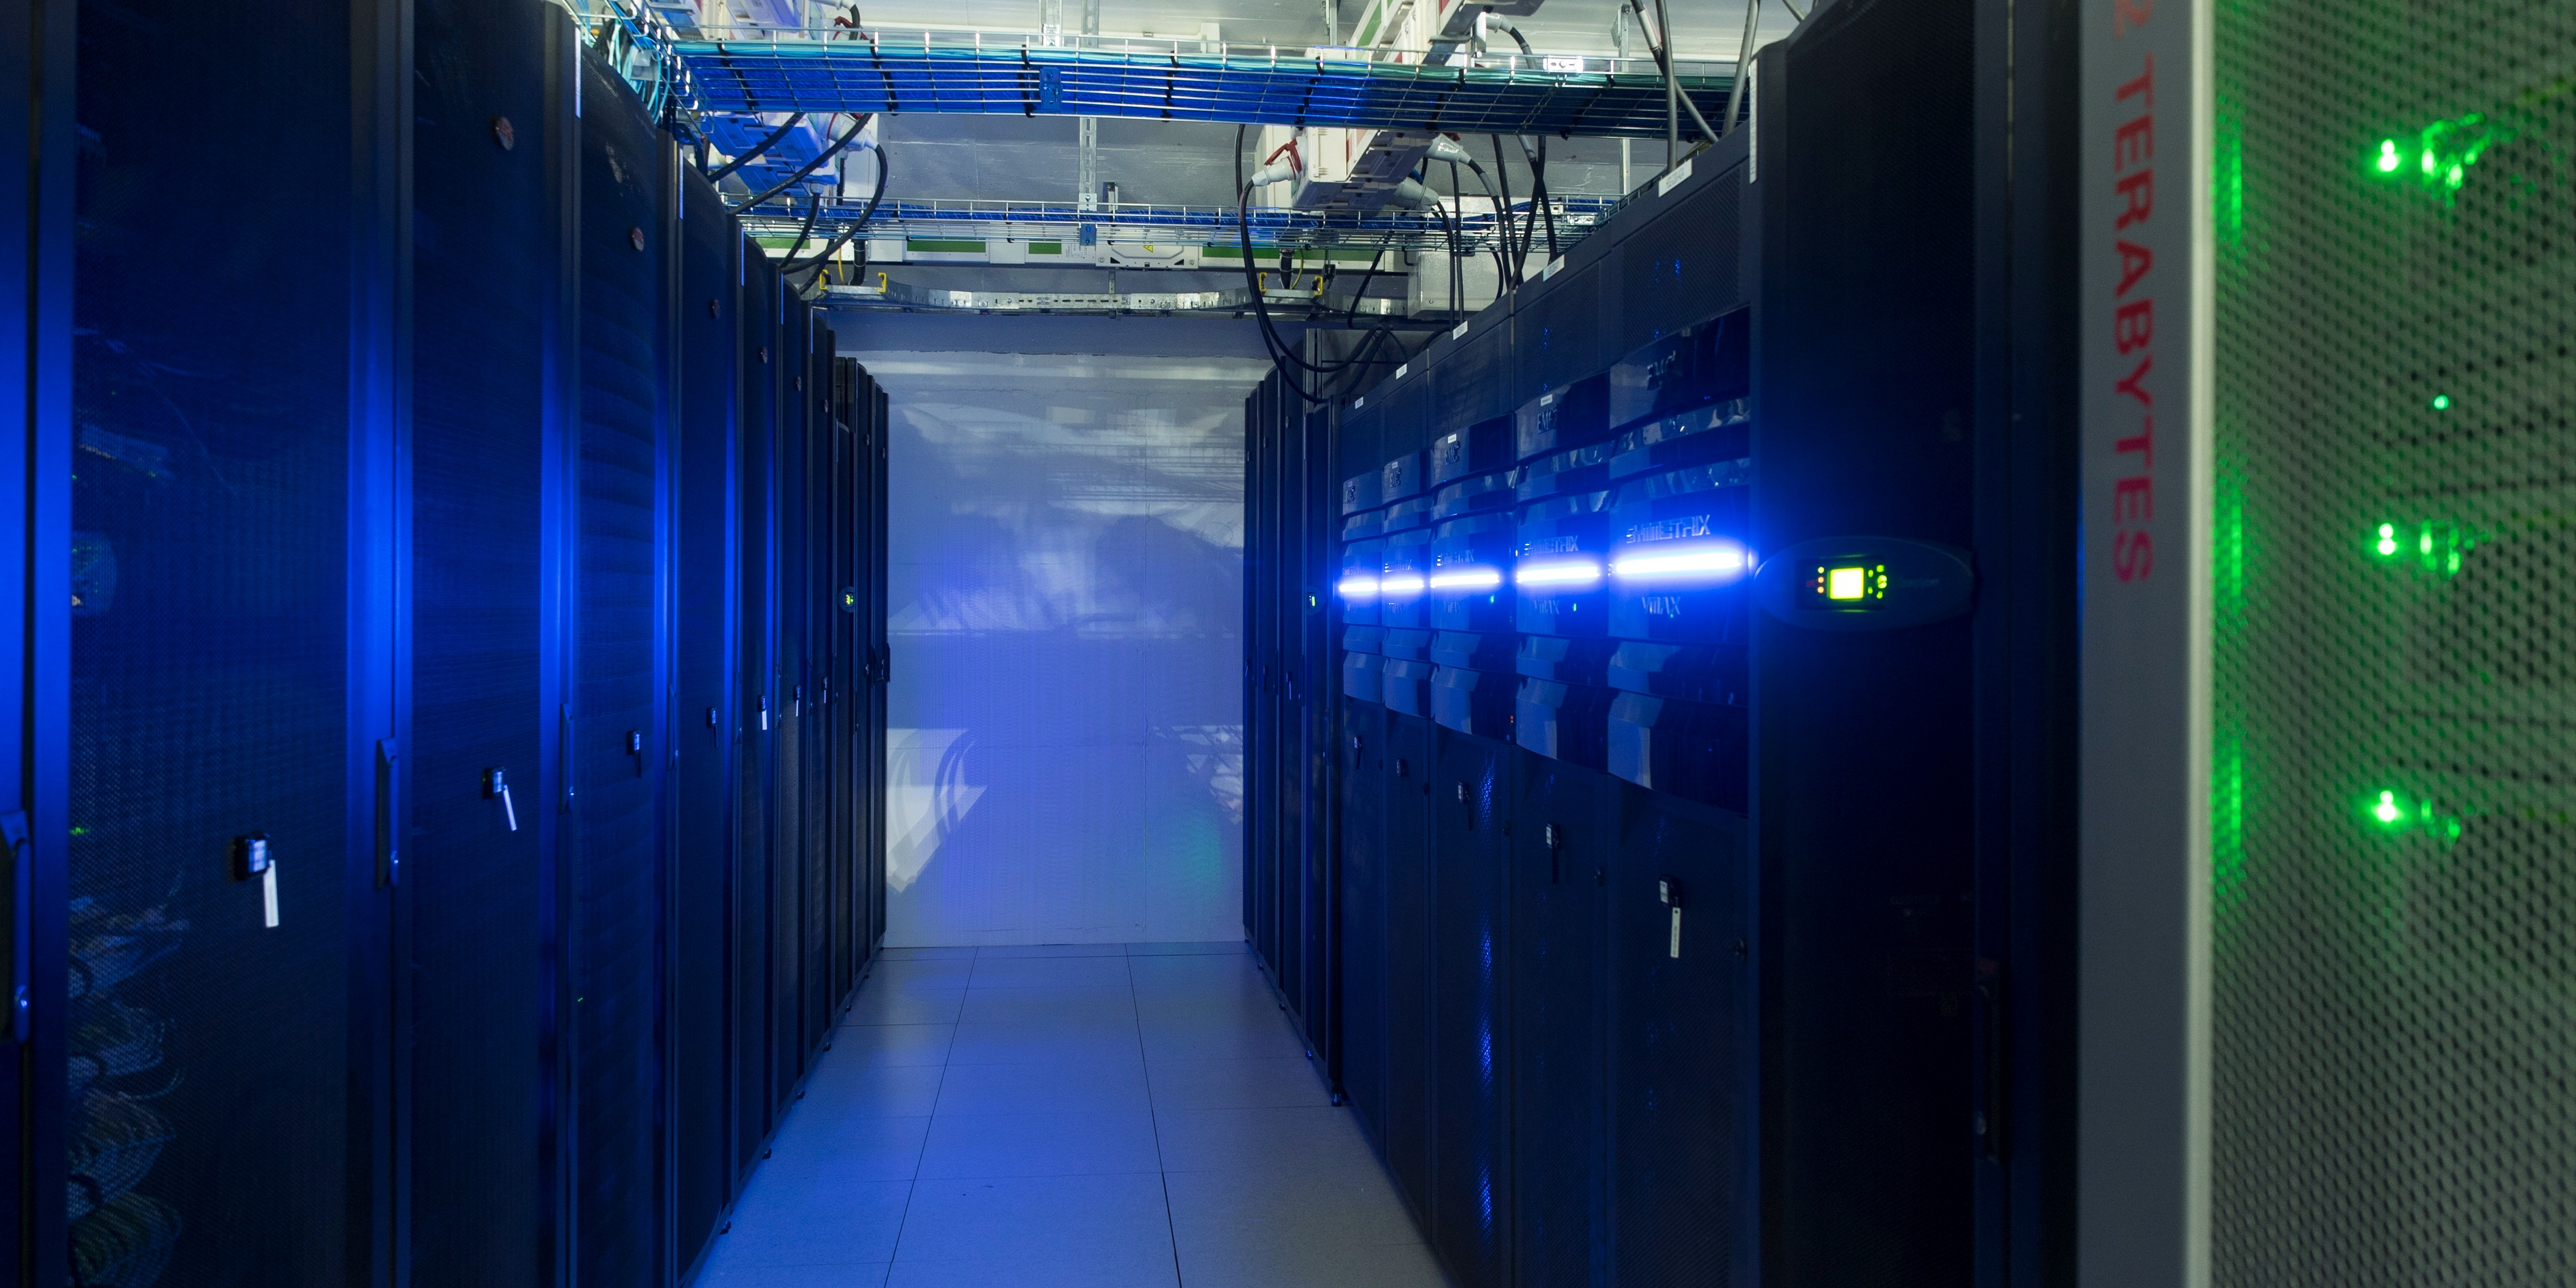 Norway's fastest growing data center, Green Mountain, chooses Xpert BI